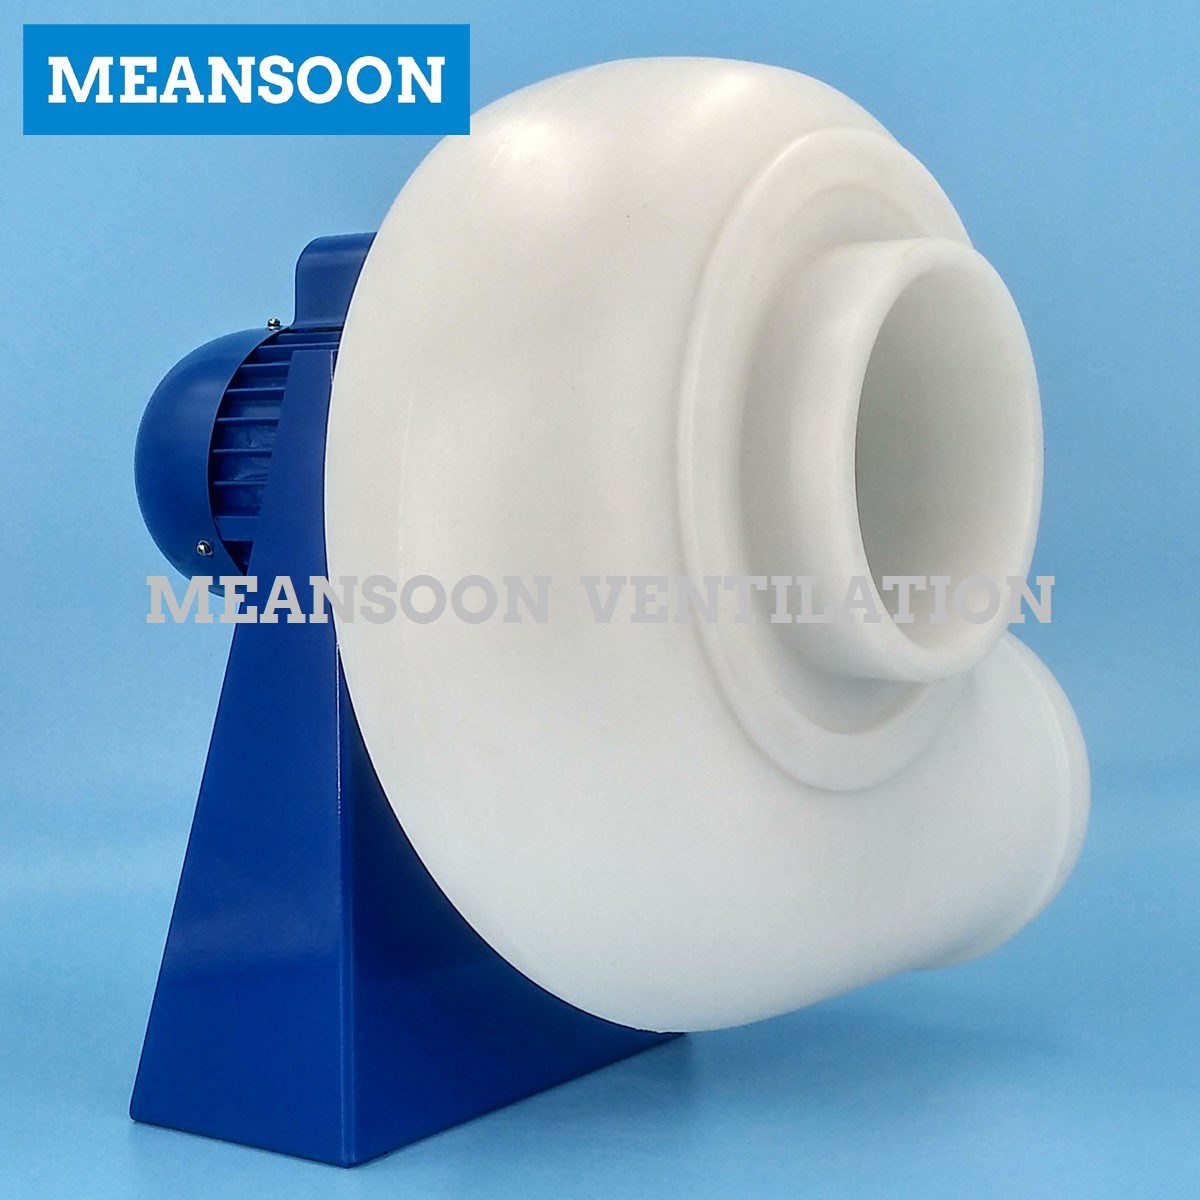 Plastic Centrifugal Fan for Exhaust Ventilation 8 Inches for Fume Hood